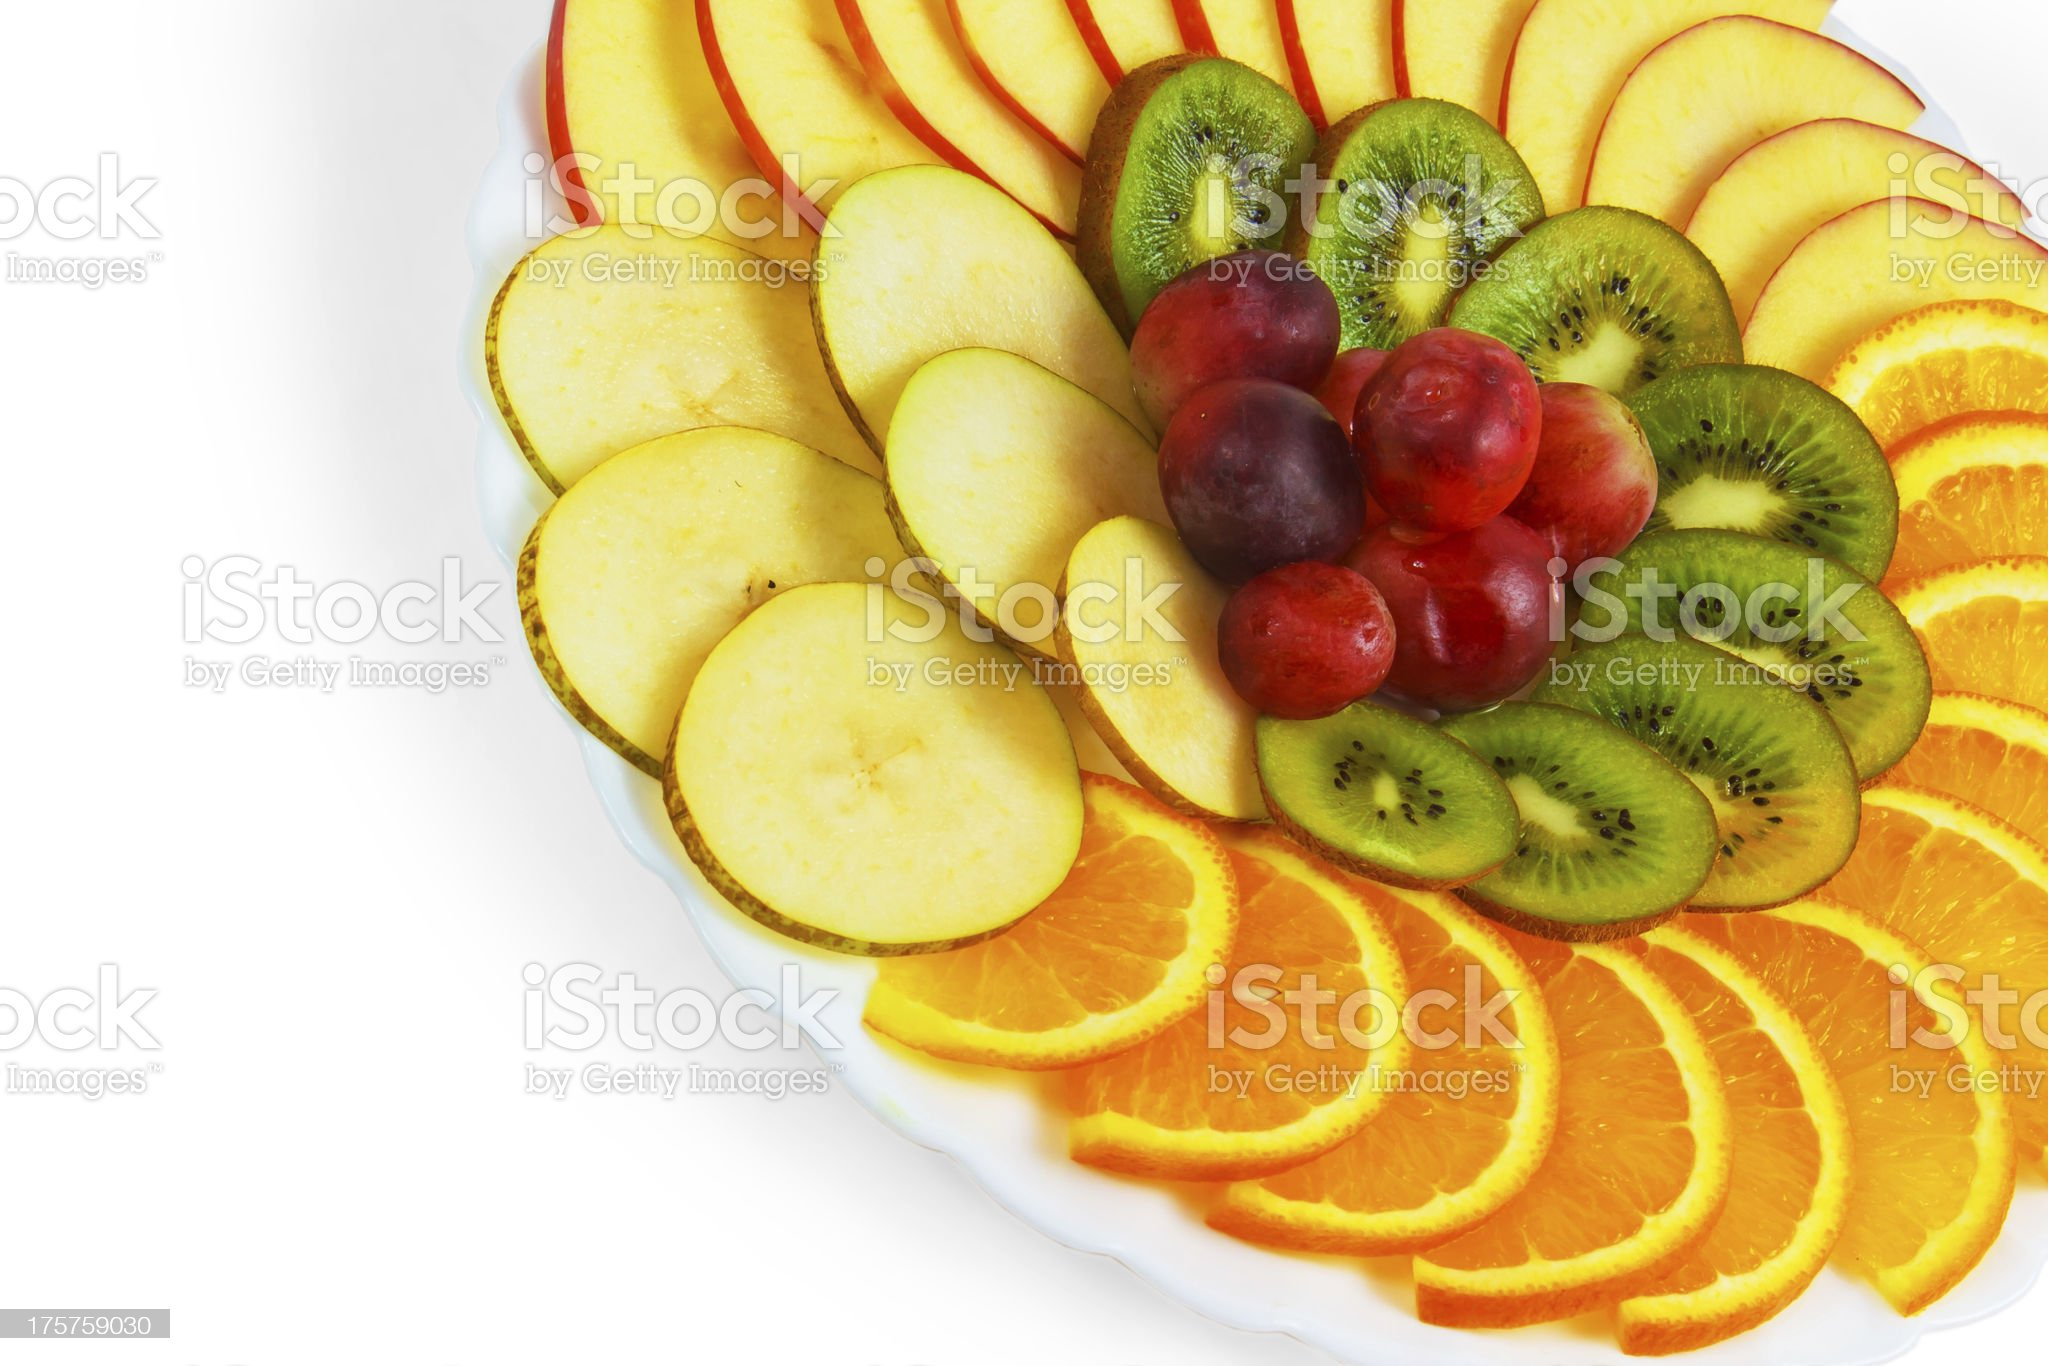 plate apple kiwi a grapes sliced isolated on white background royalty-free stock photo